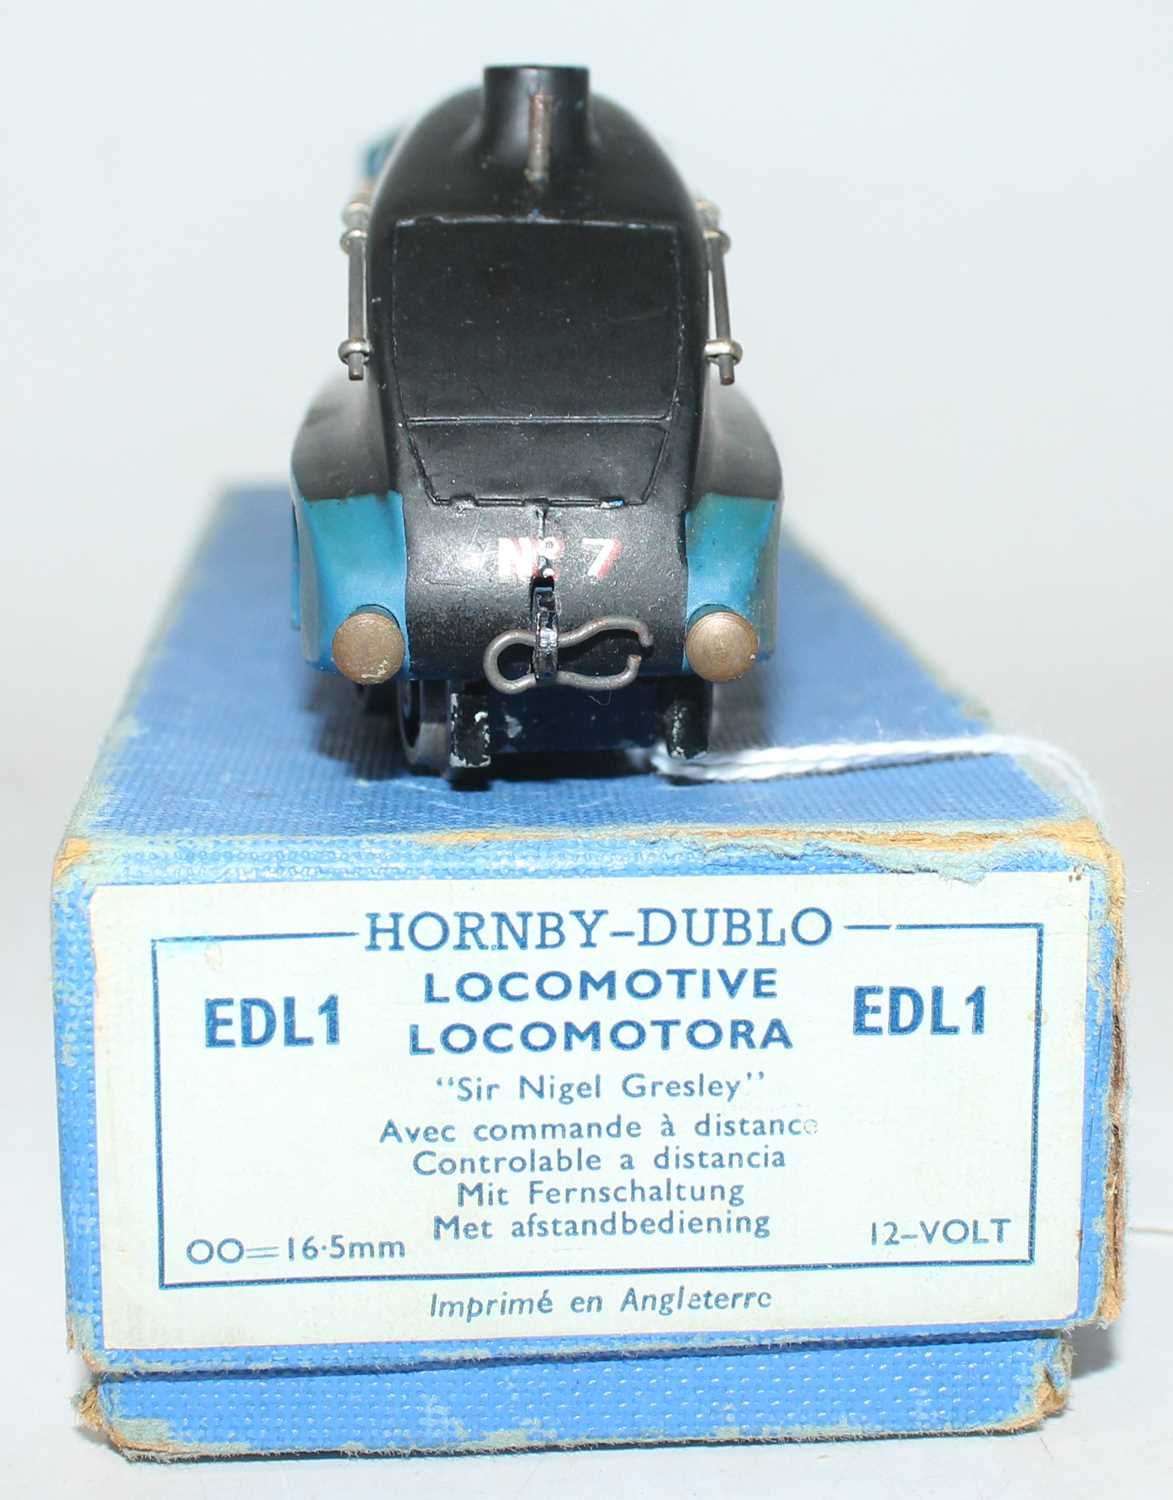 Hornby Dublo EDL1 4-6-2 A4 Locomotive Sir Nigel Gresley, blue, No.7 (VG-BVG) with unboxed LNER - Image 3 of 4